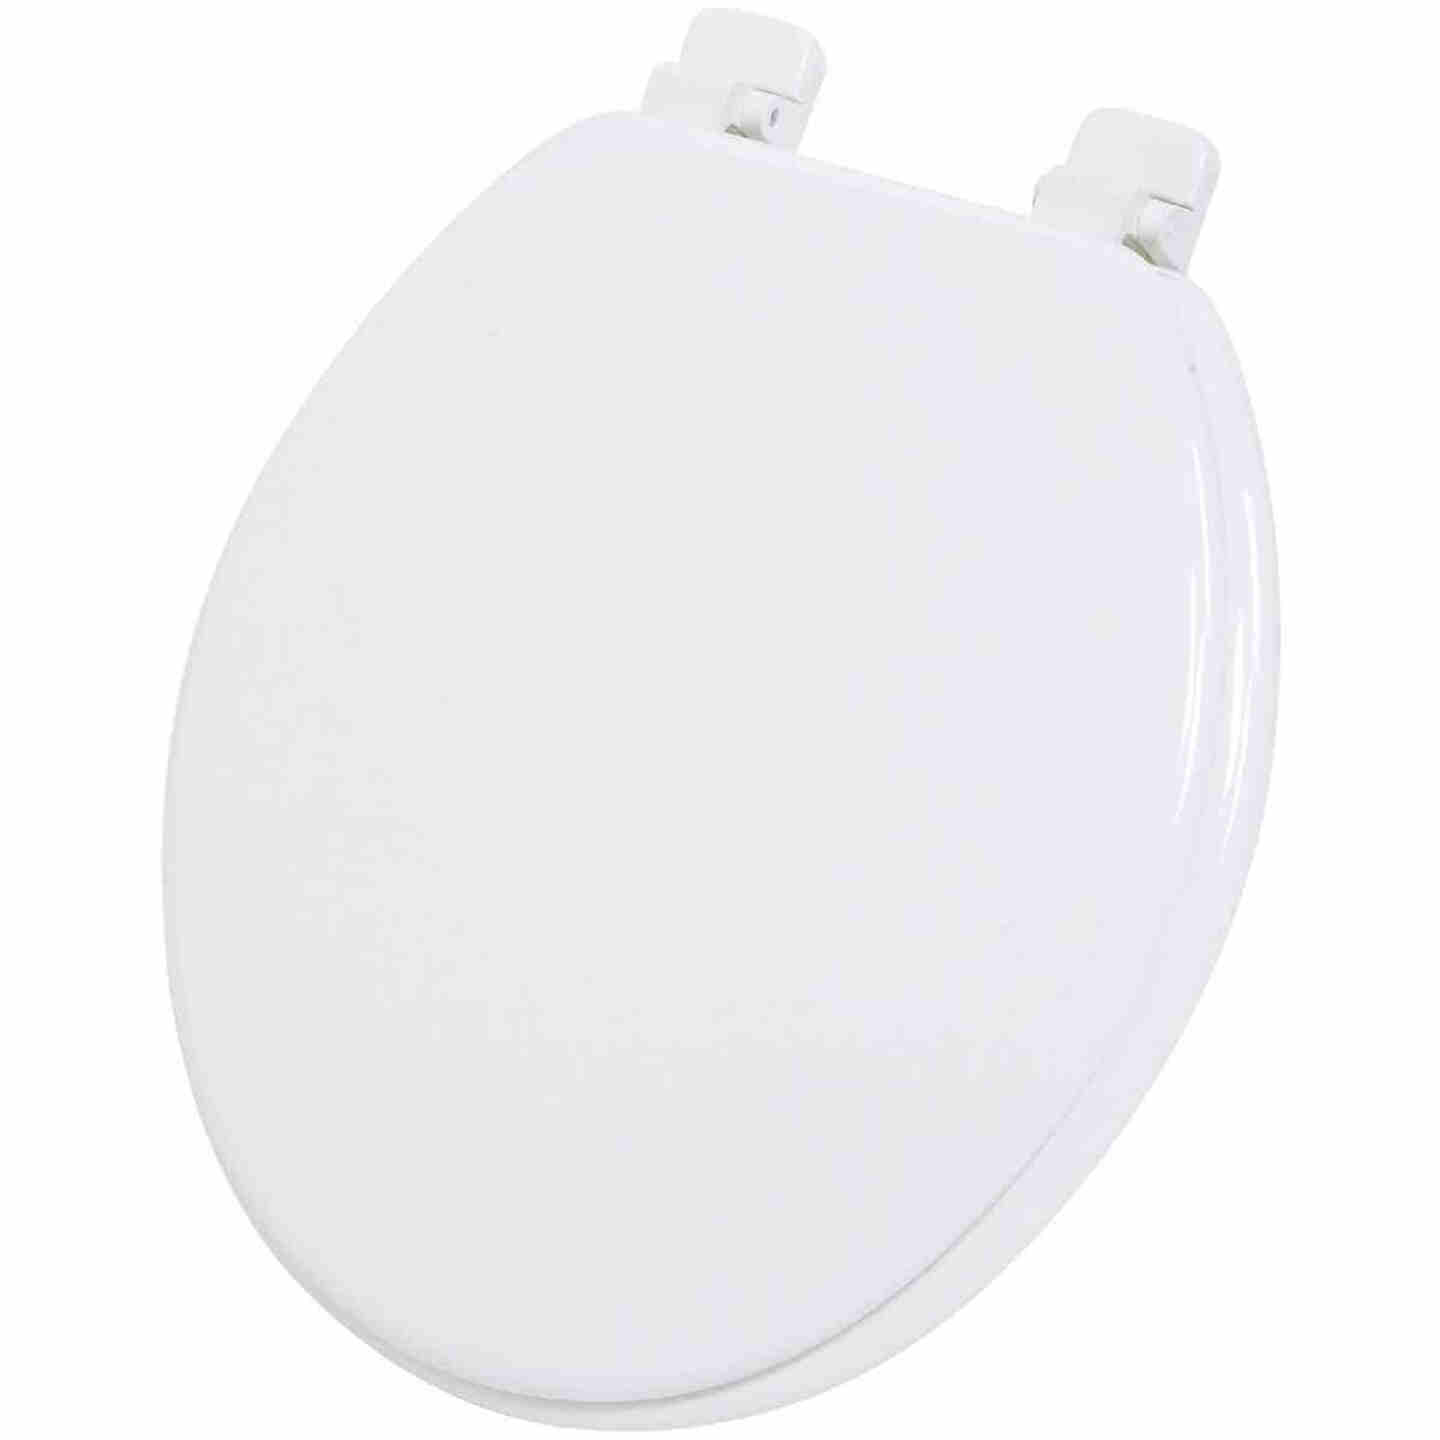 Home Impressions Round Closed Front White Wood Toilet Seat Image 1